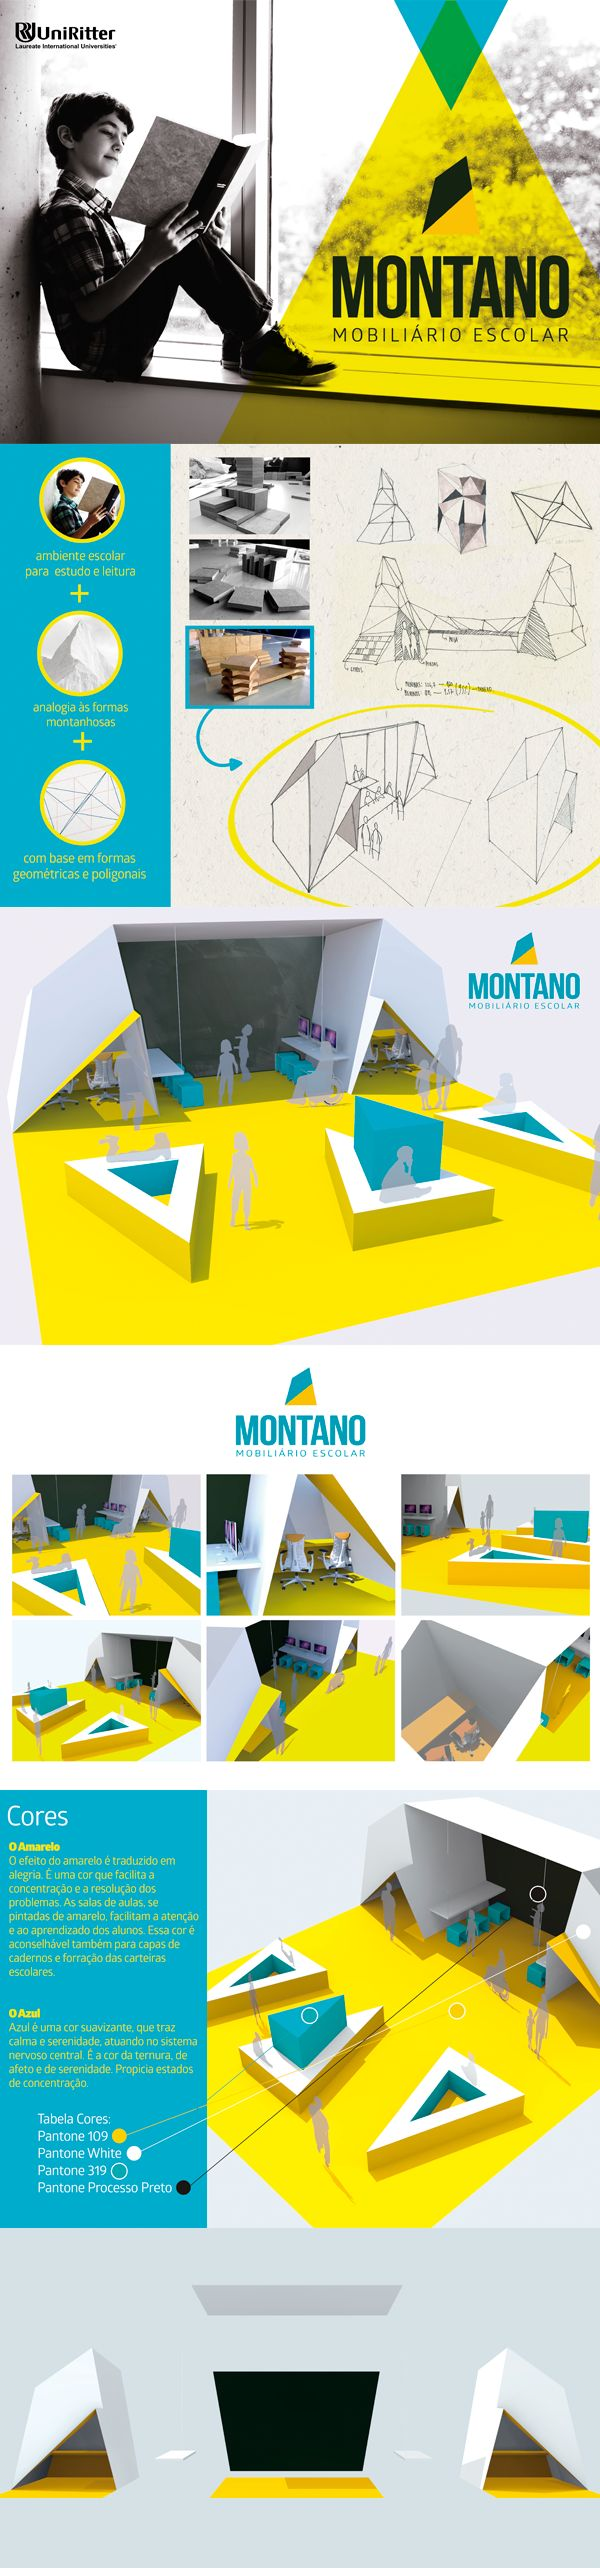 Montano | Mobiliário Escolar on Behance